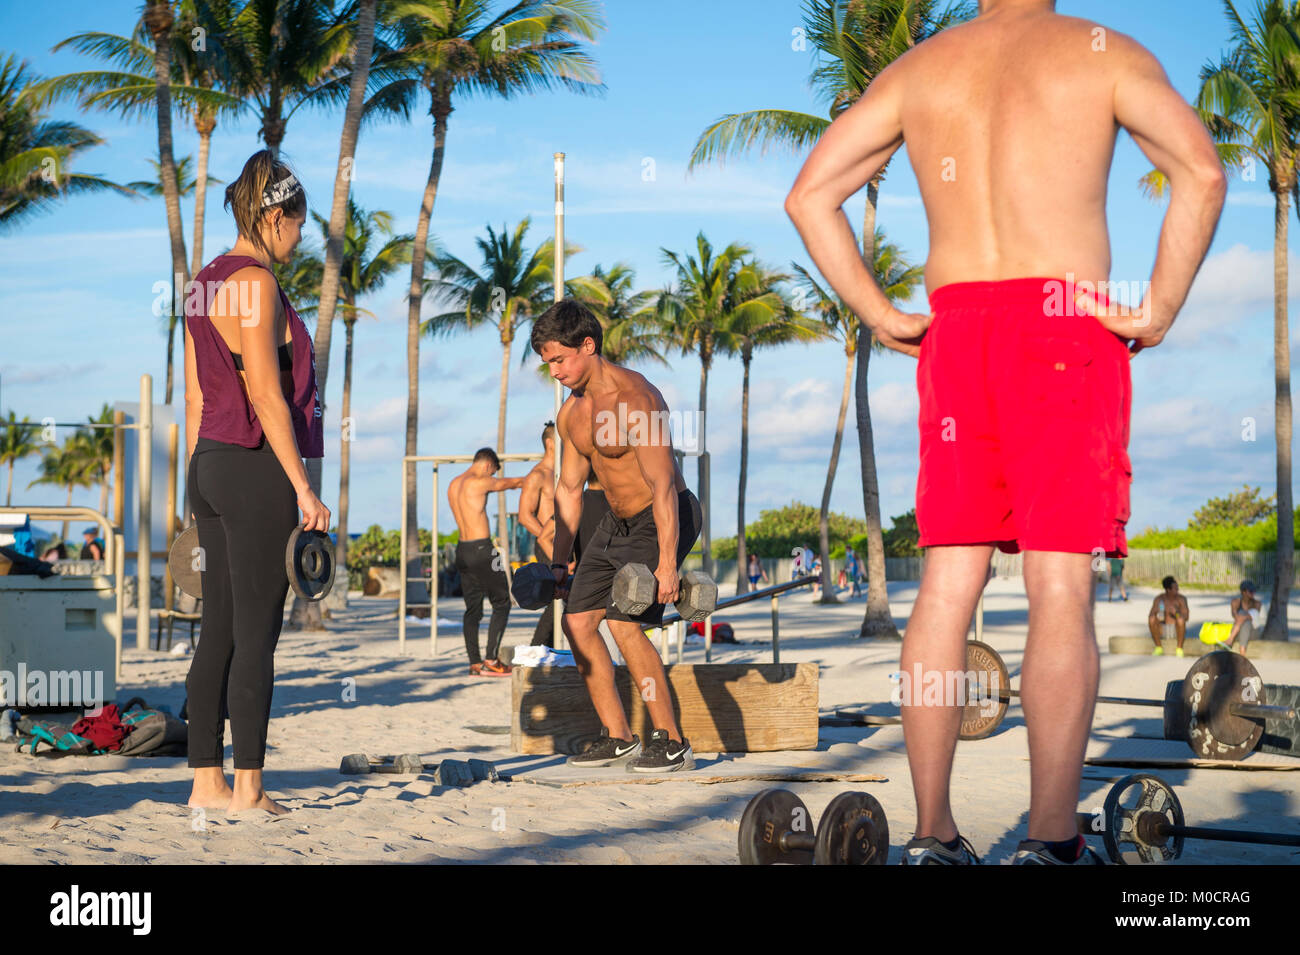 MIAMI - DECEMBER 29, 2017: Muscular young men and women work out in the outdoor gym known as Muscle Beach in Lummus - Stock Image